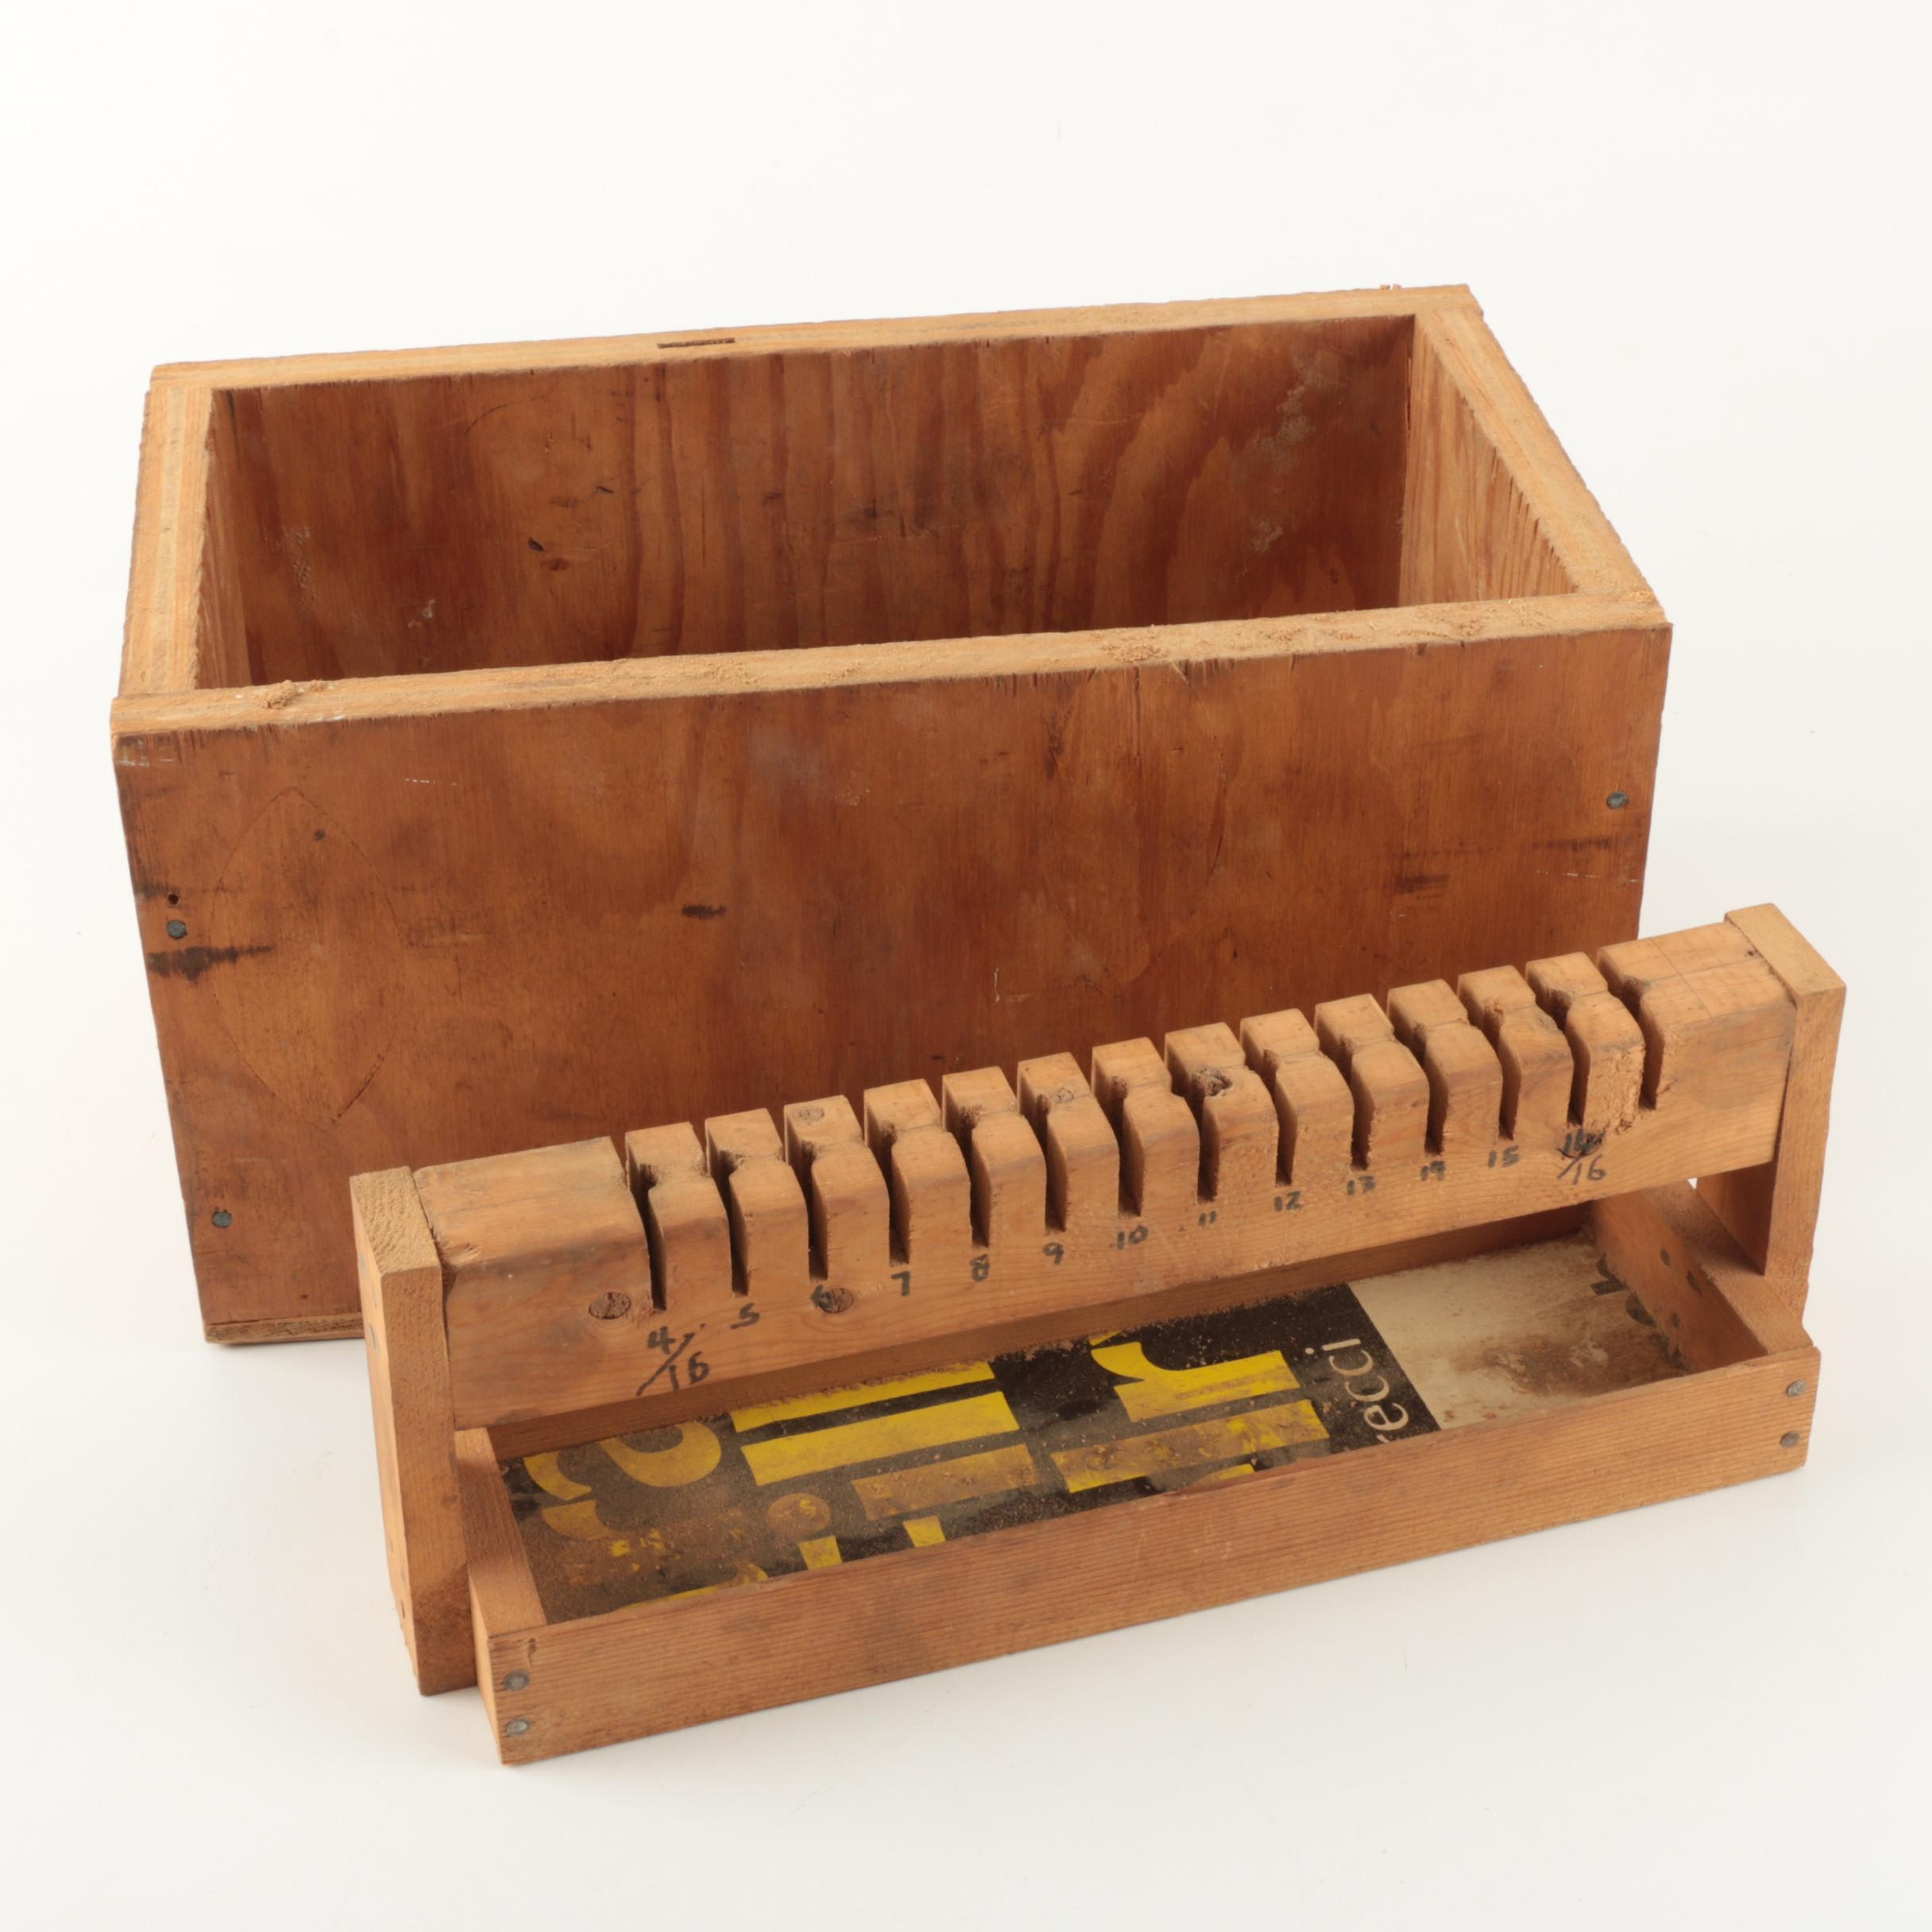 Wooden Tool Box and Assorted Tools